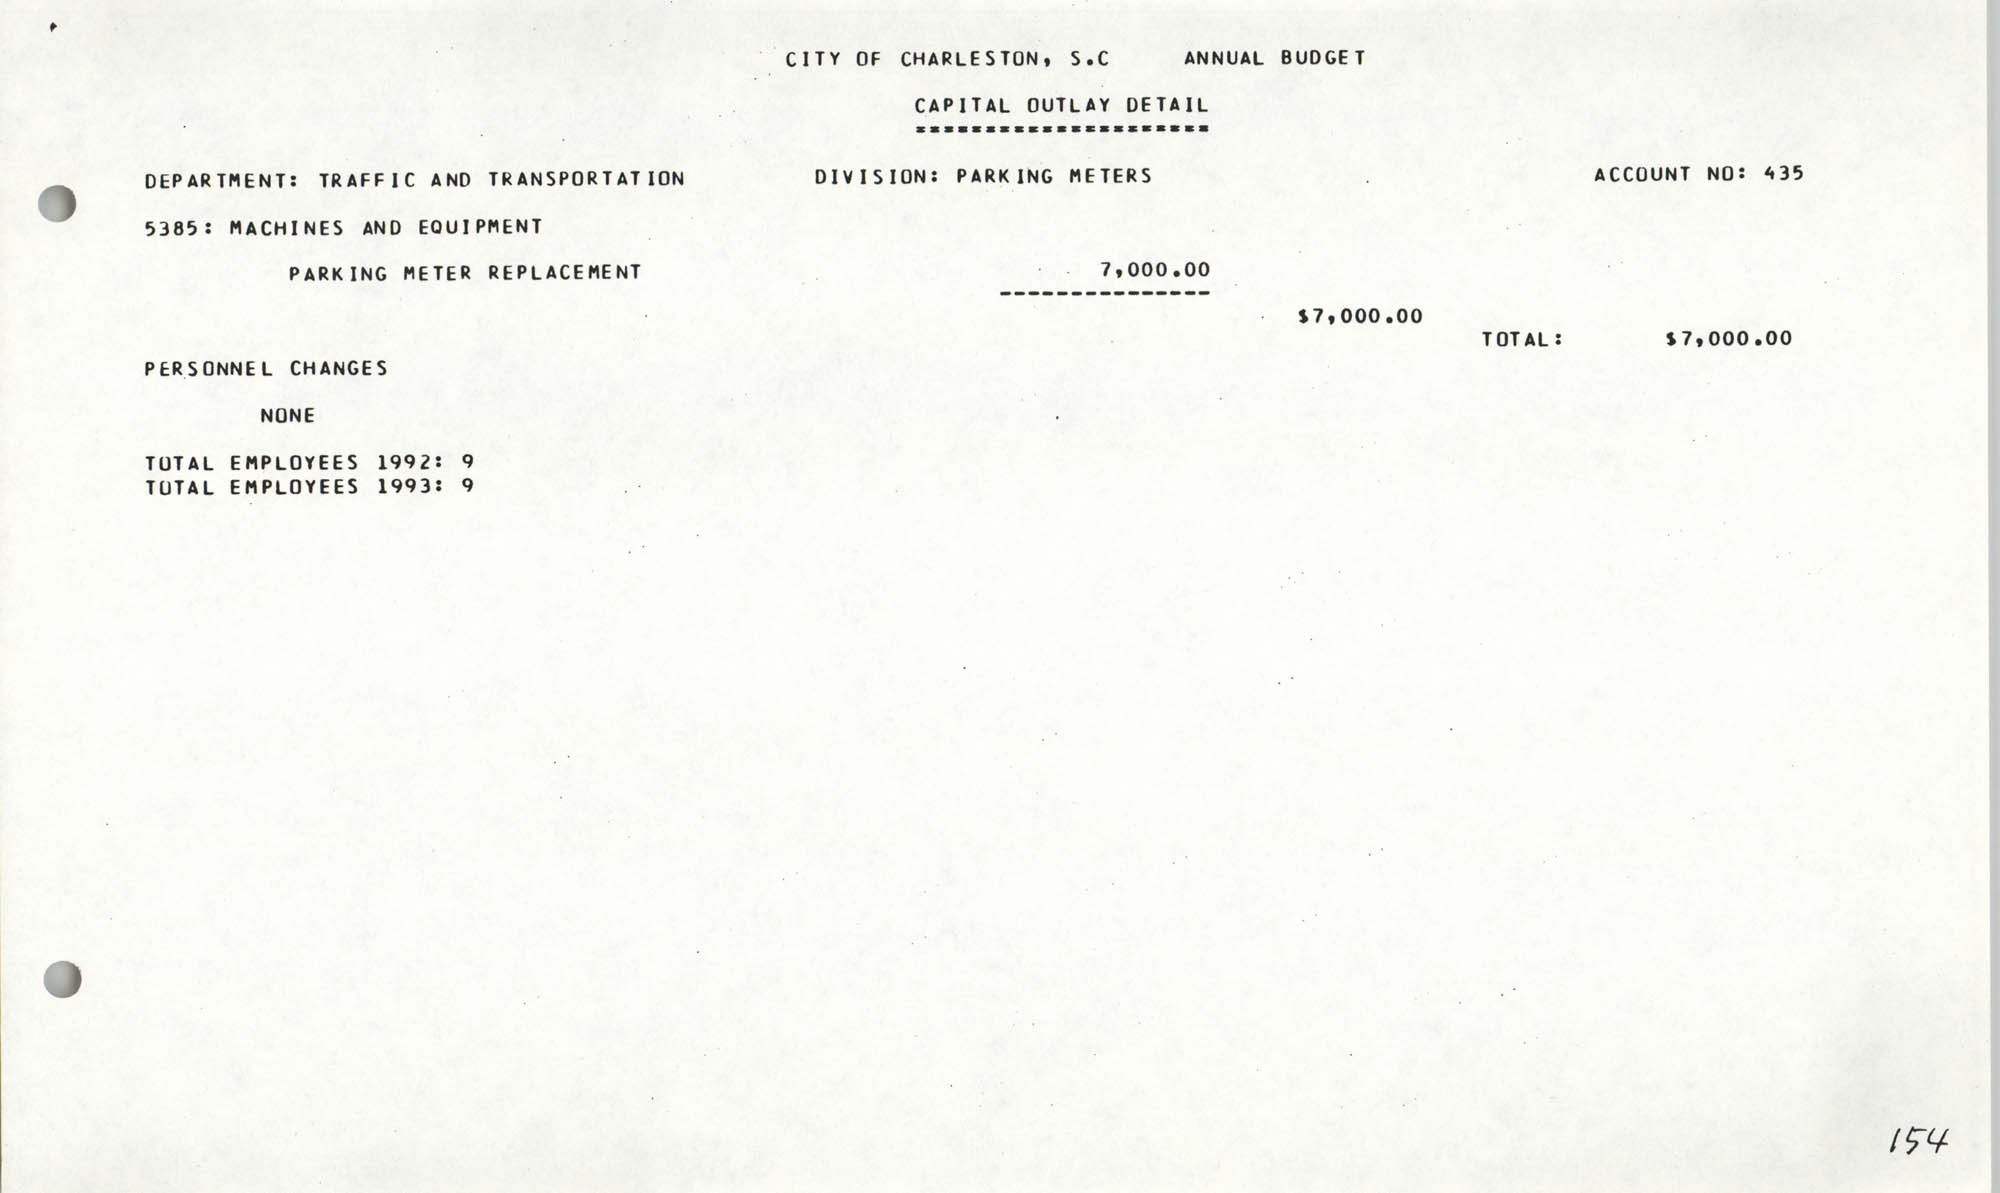 The City Council of Charleston, South Carolina, 1993 Budget, Page 154